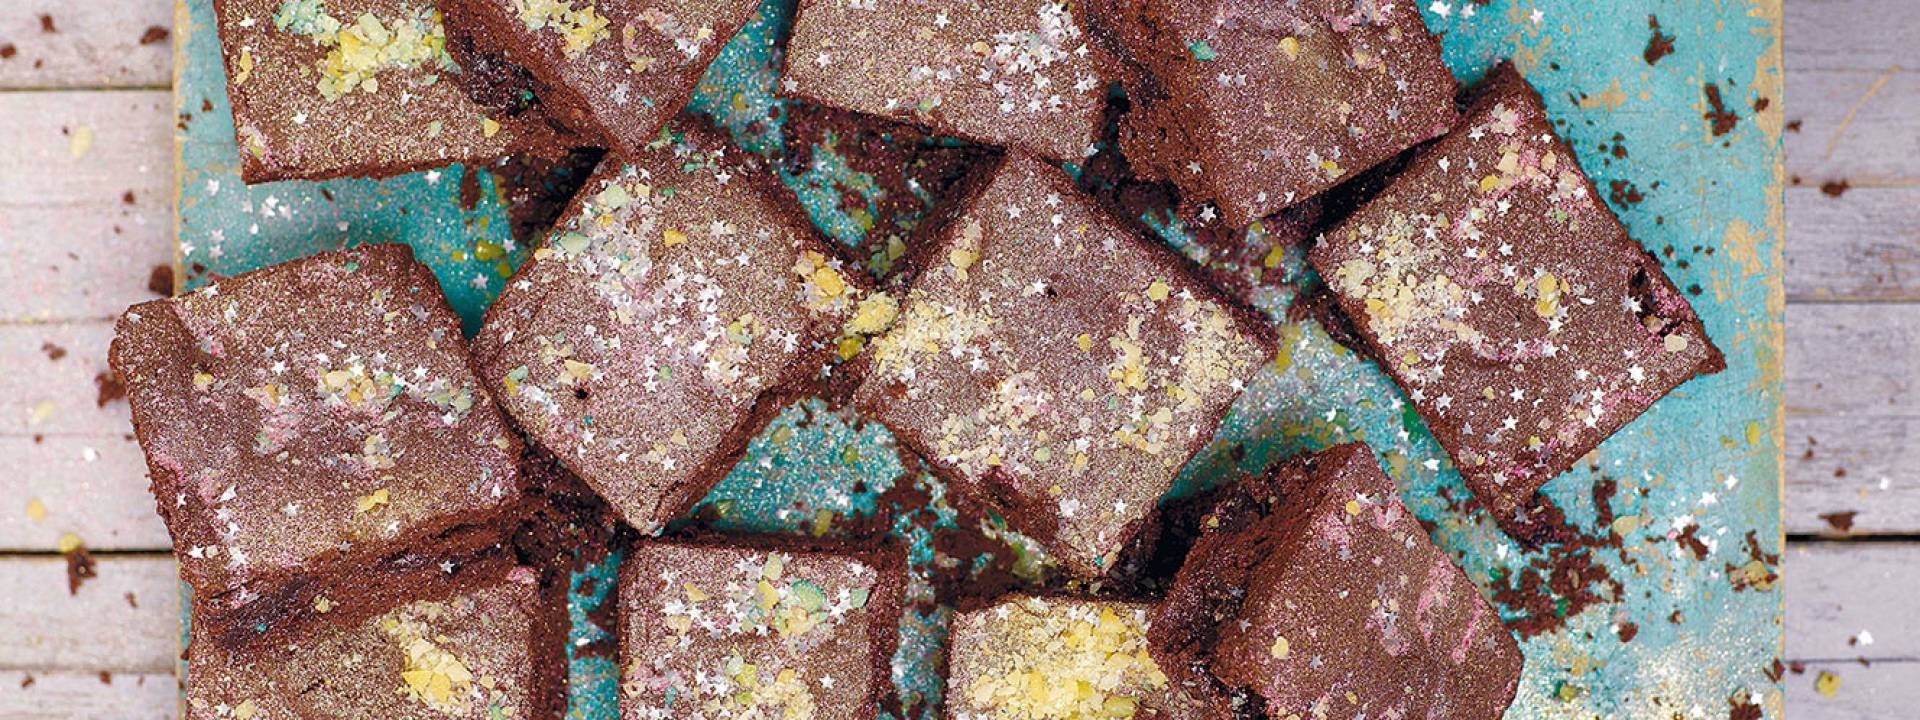 Pop power chocolate brownies